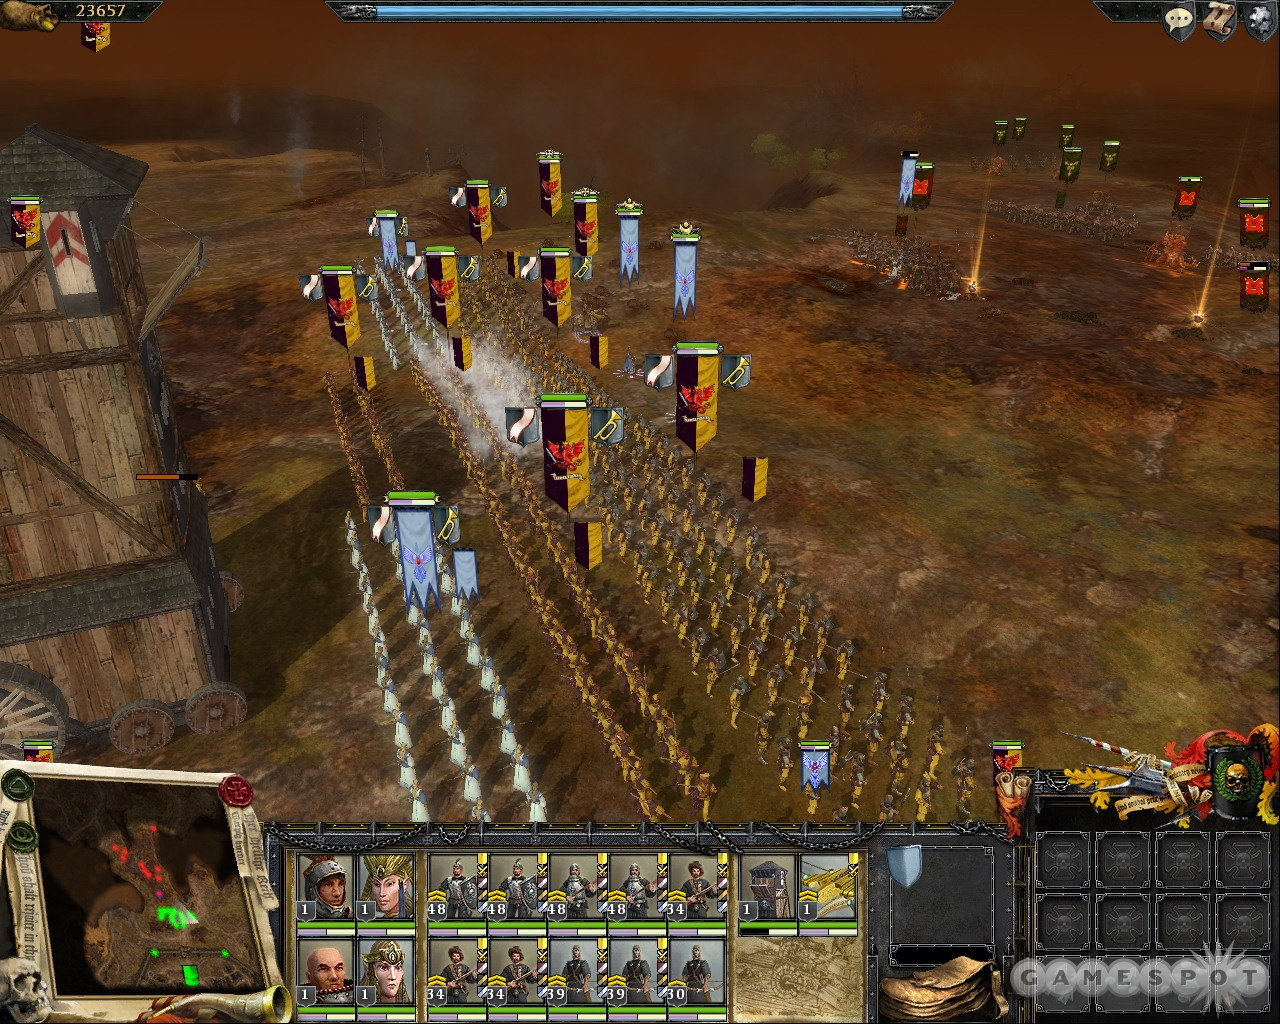 The battles in Mark of Chaos are just like the ones in Total War games, only these feature orcs, demons, elves, and other fantasy creatures.